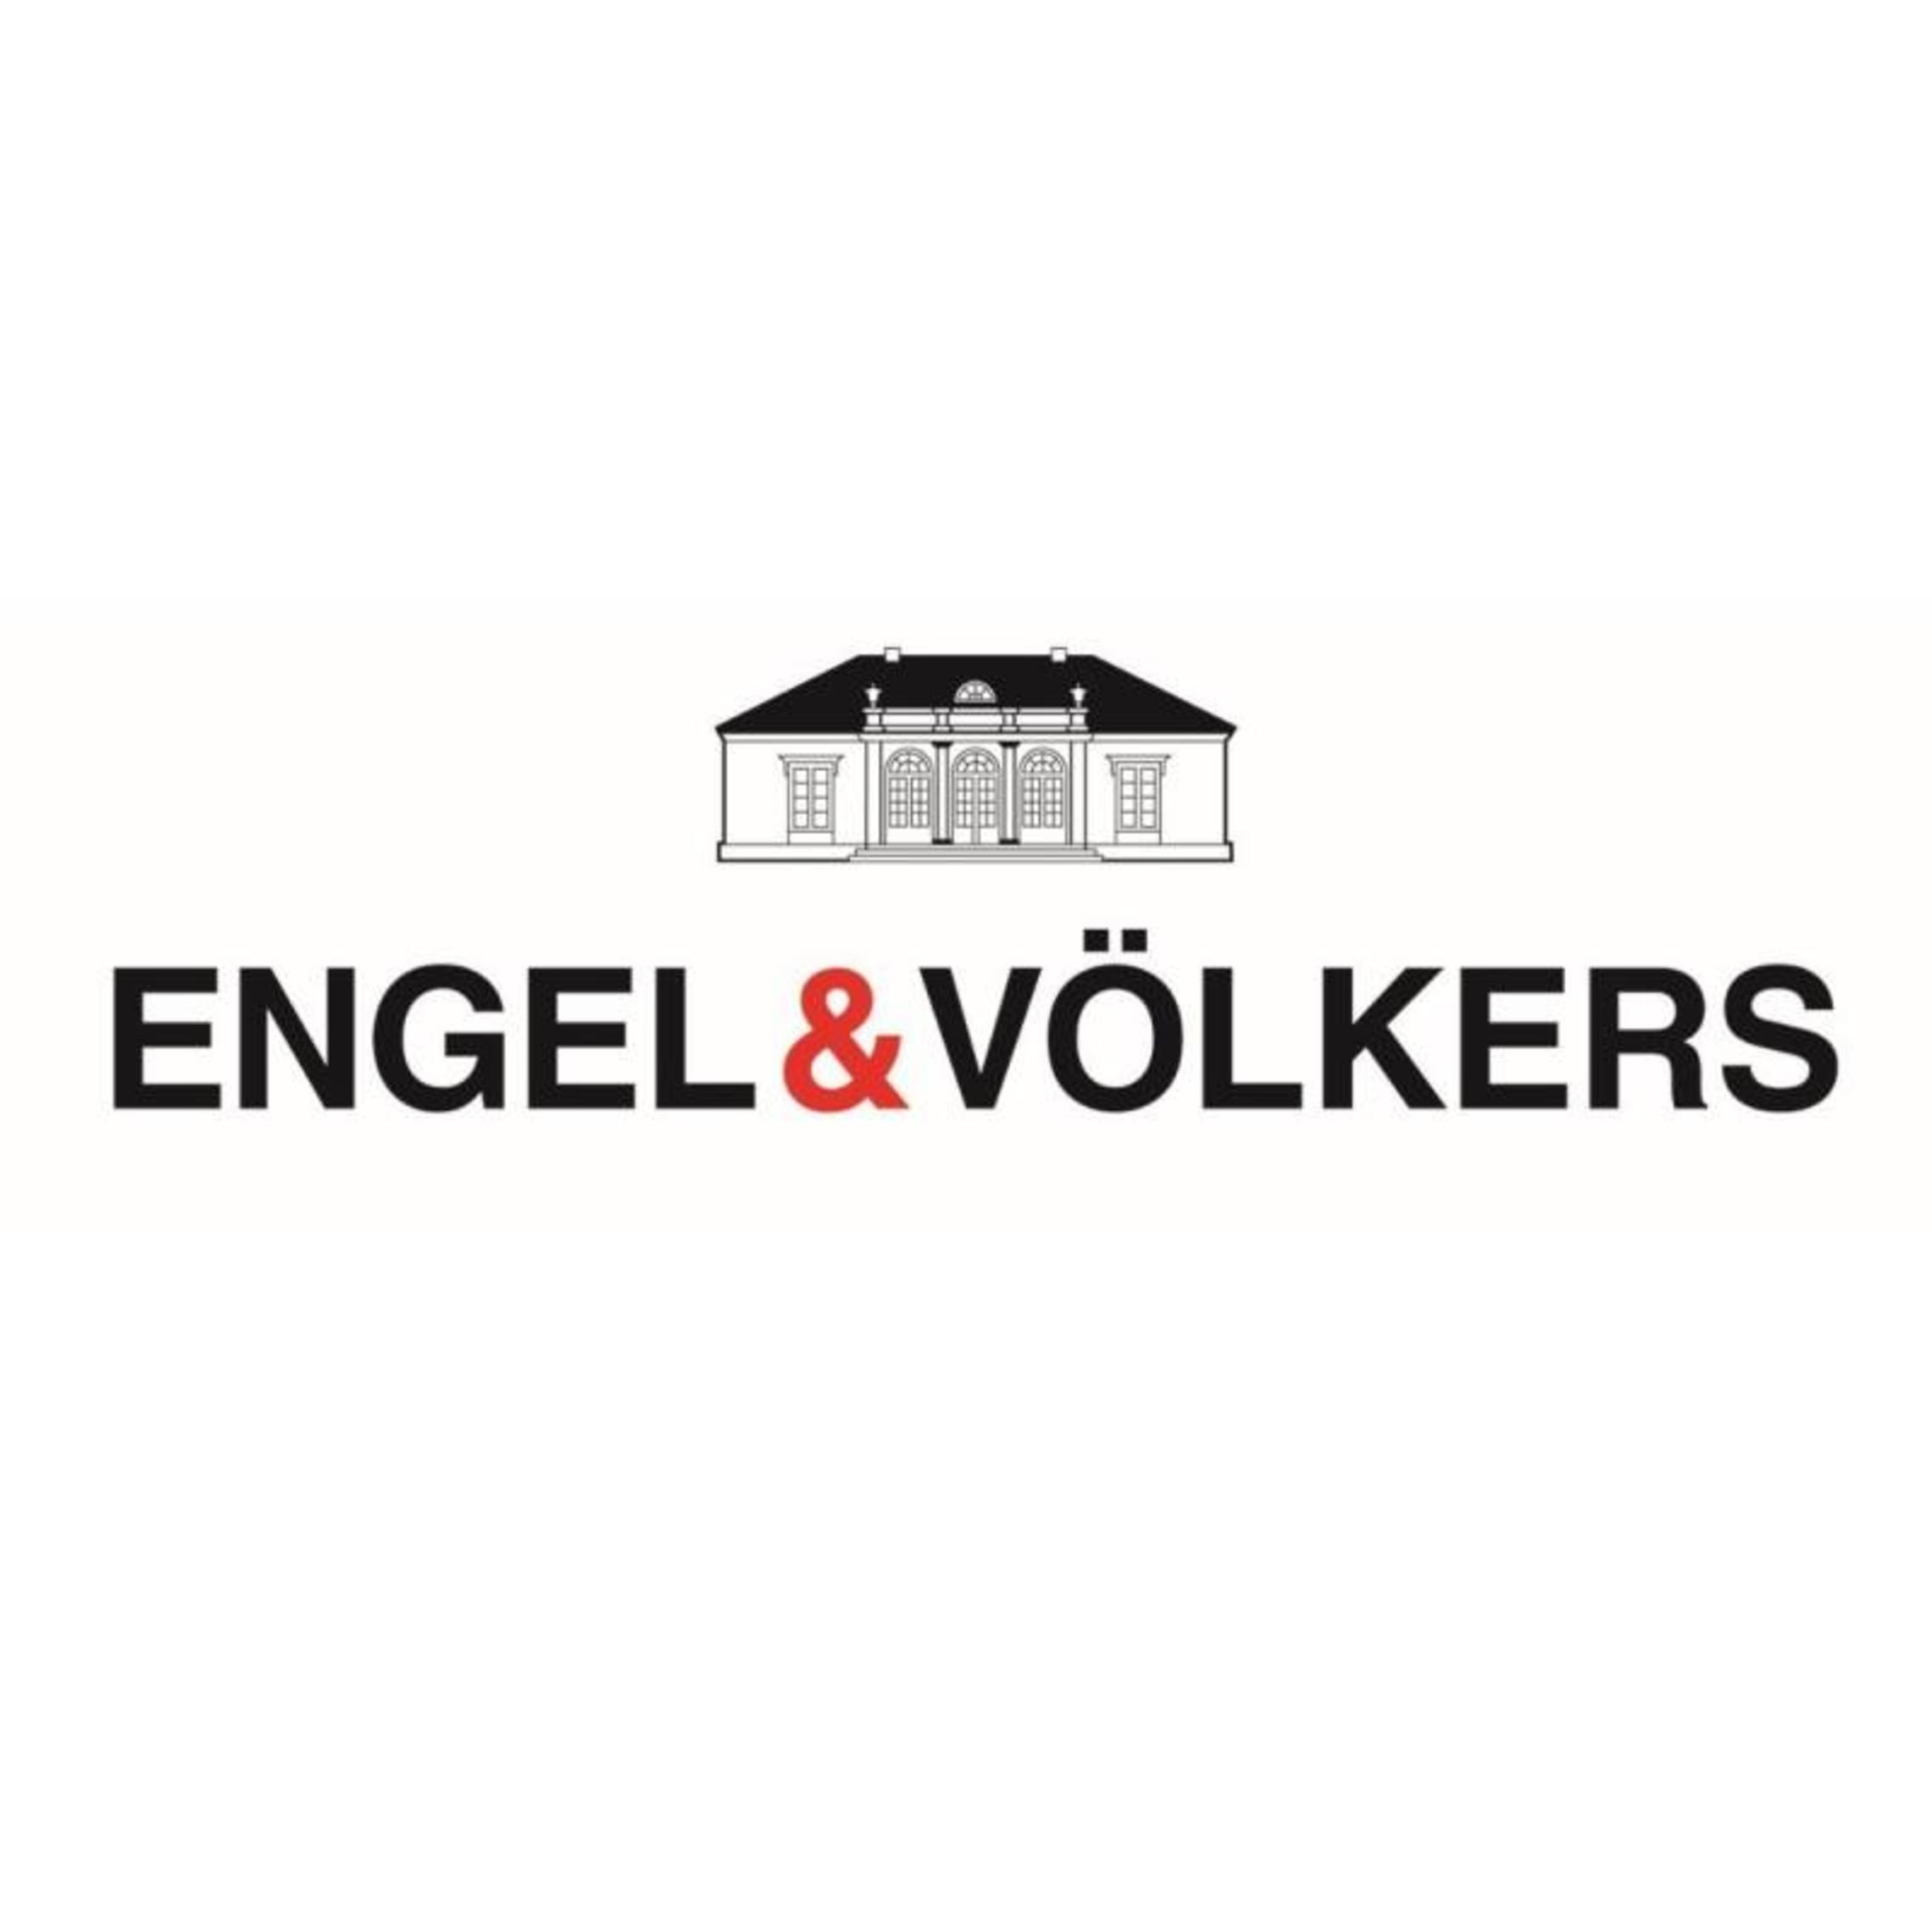 engel and volkers- company logo